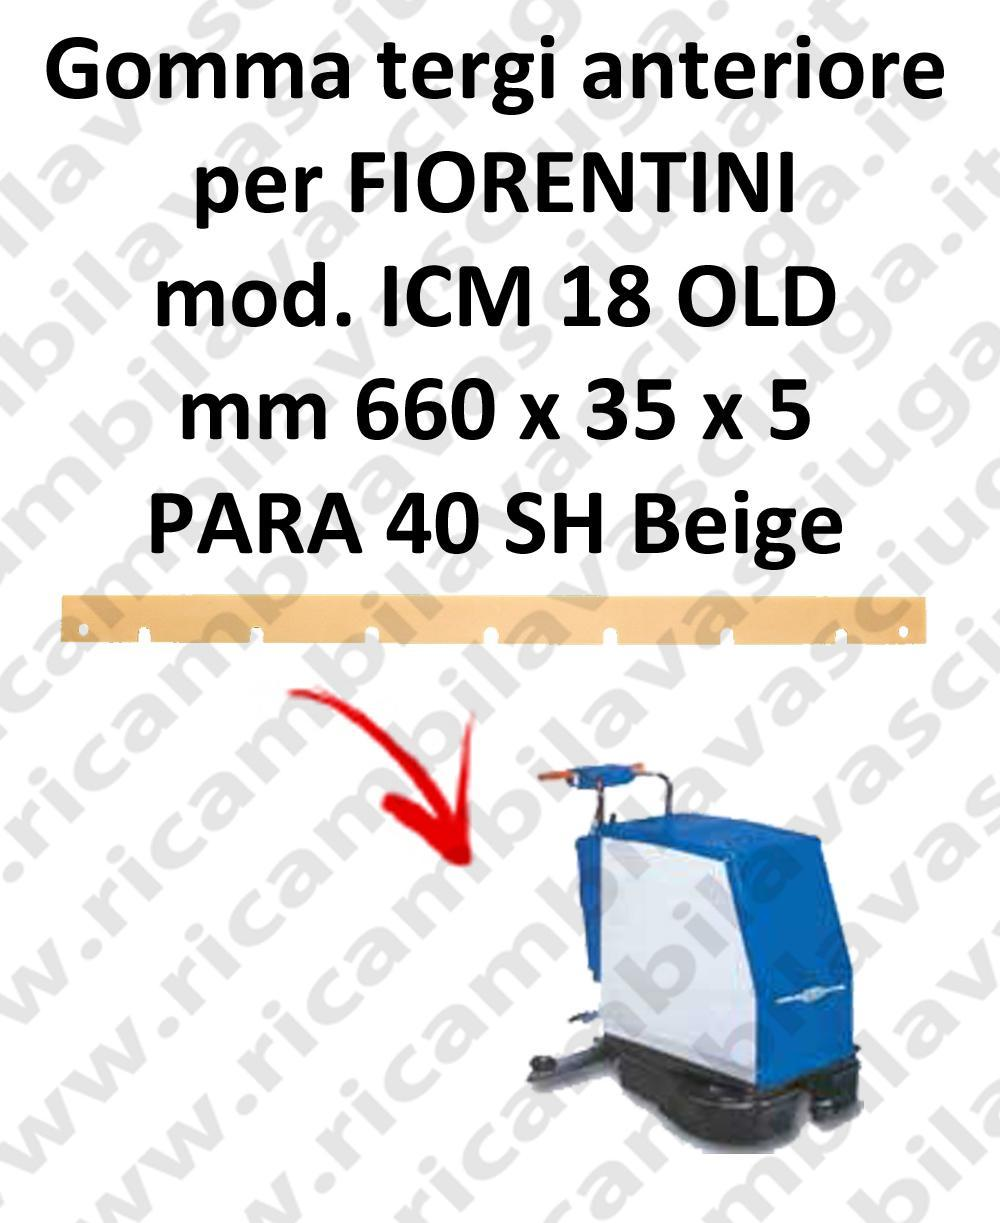 ICM 18 OLD Front Squeegee rubberfor FIORENTINI squeegee